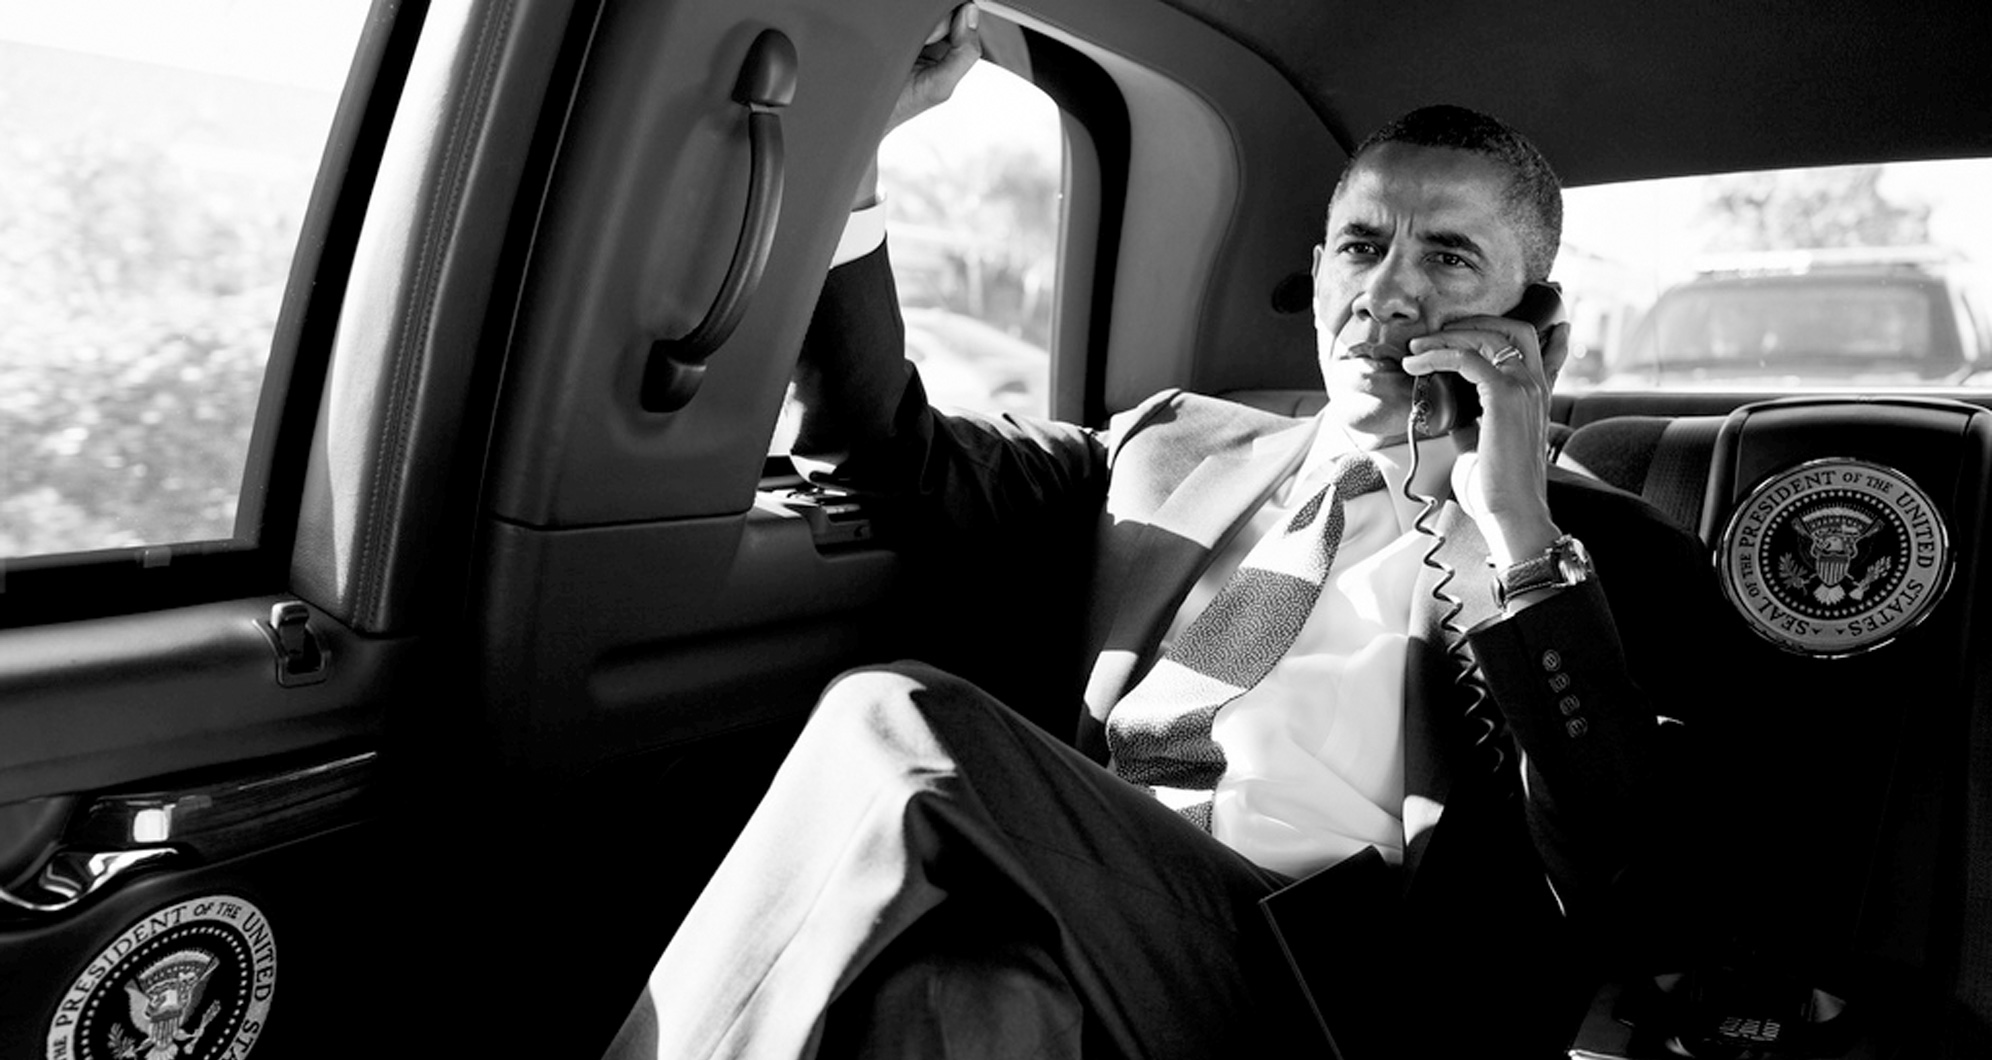 Hey Conservatives, This Is What It Looked Like When Our POTUS Was A BadAss Not A Putin Stooge